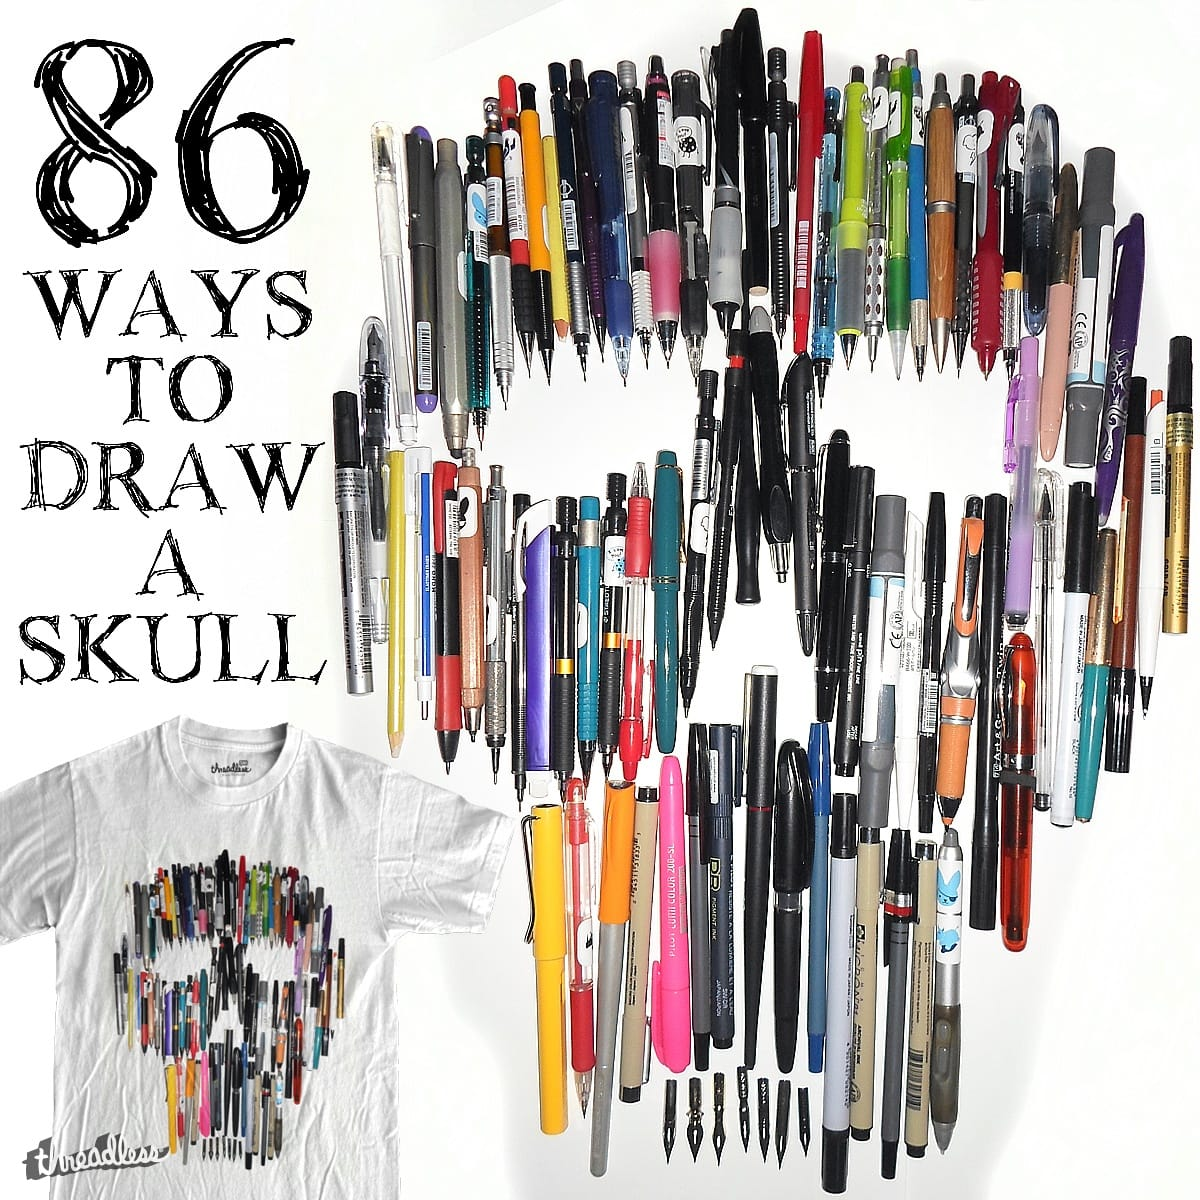 86 Ways to Draw a Skull by RL76 on Threadless